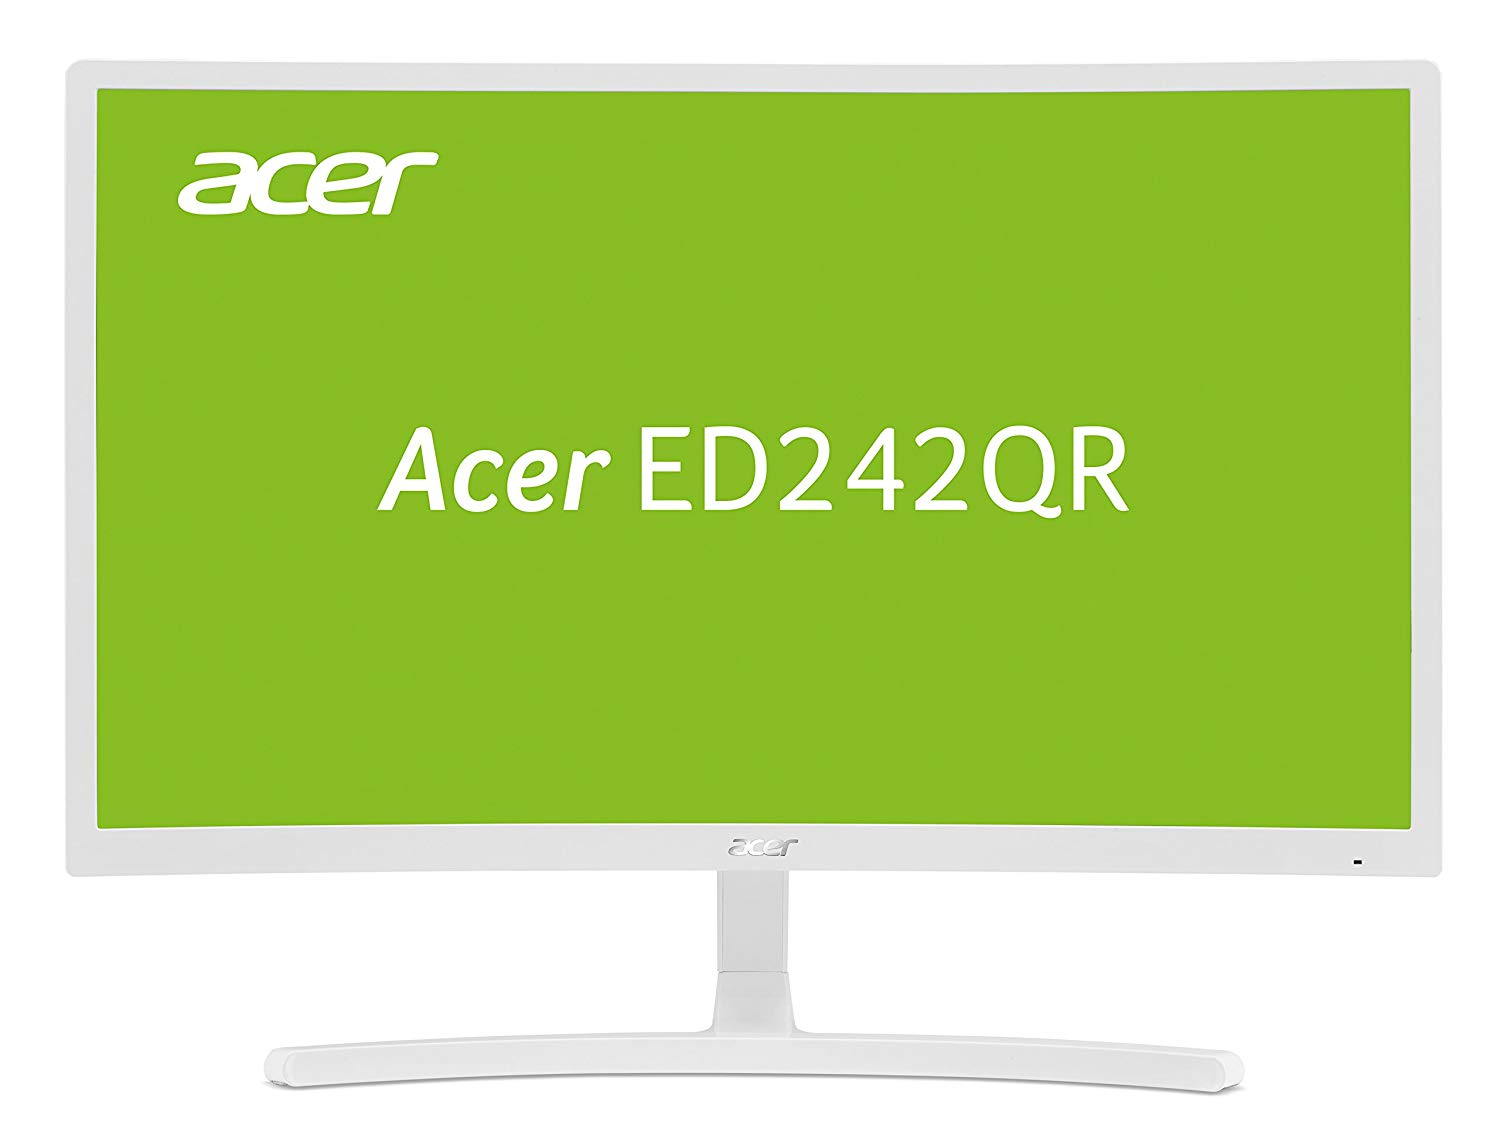 Acer Curved Monitor amazon